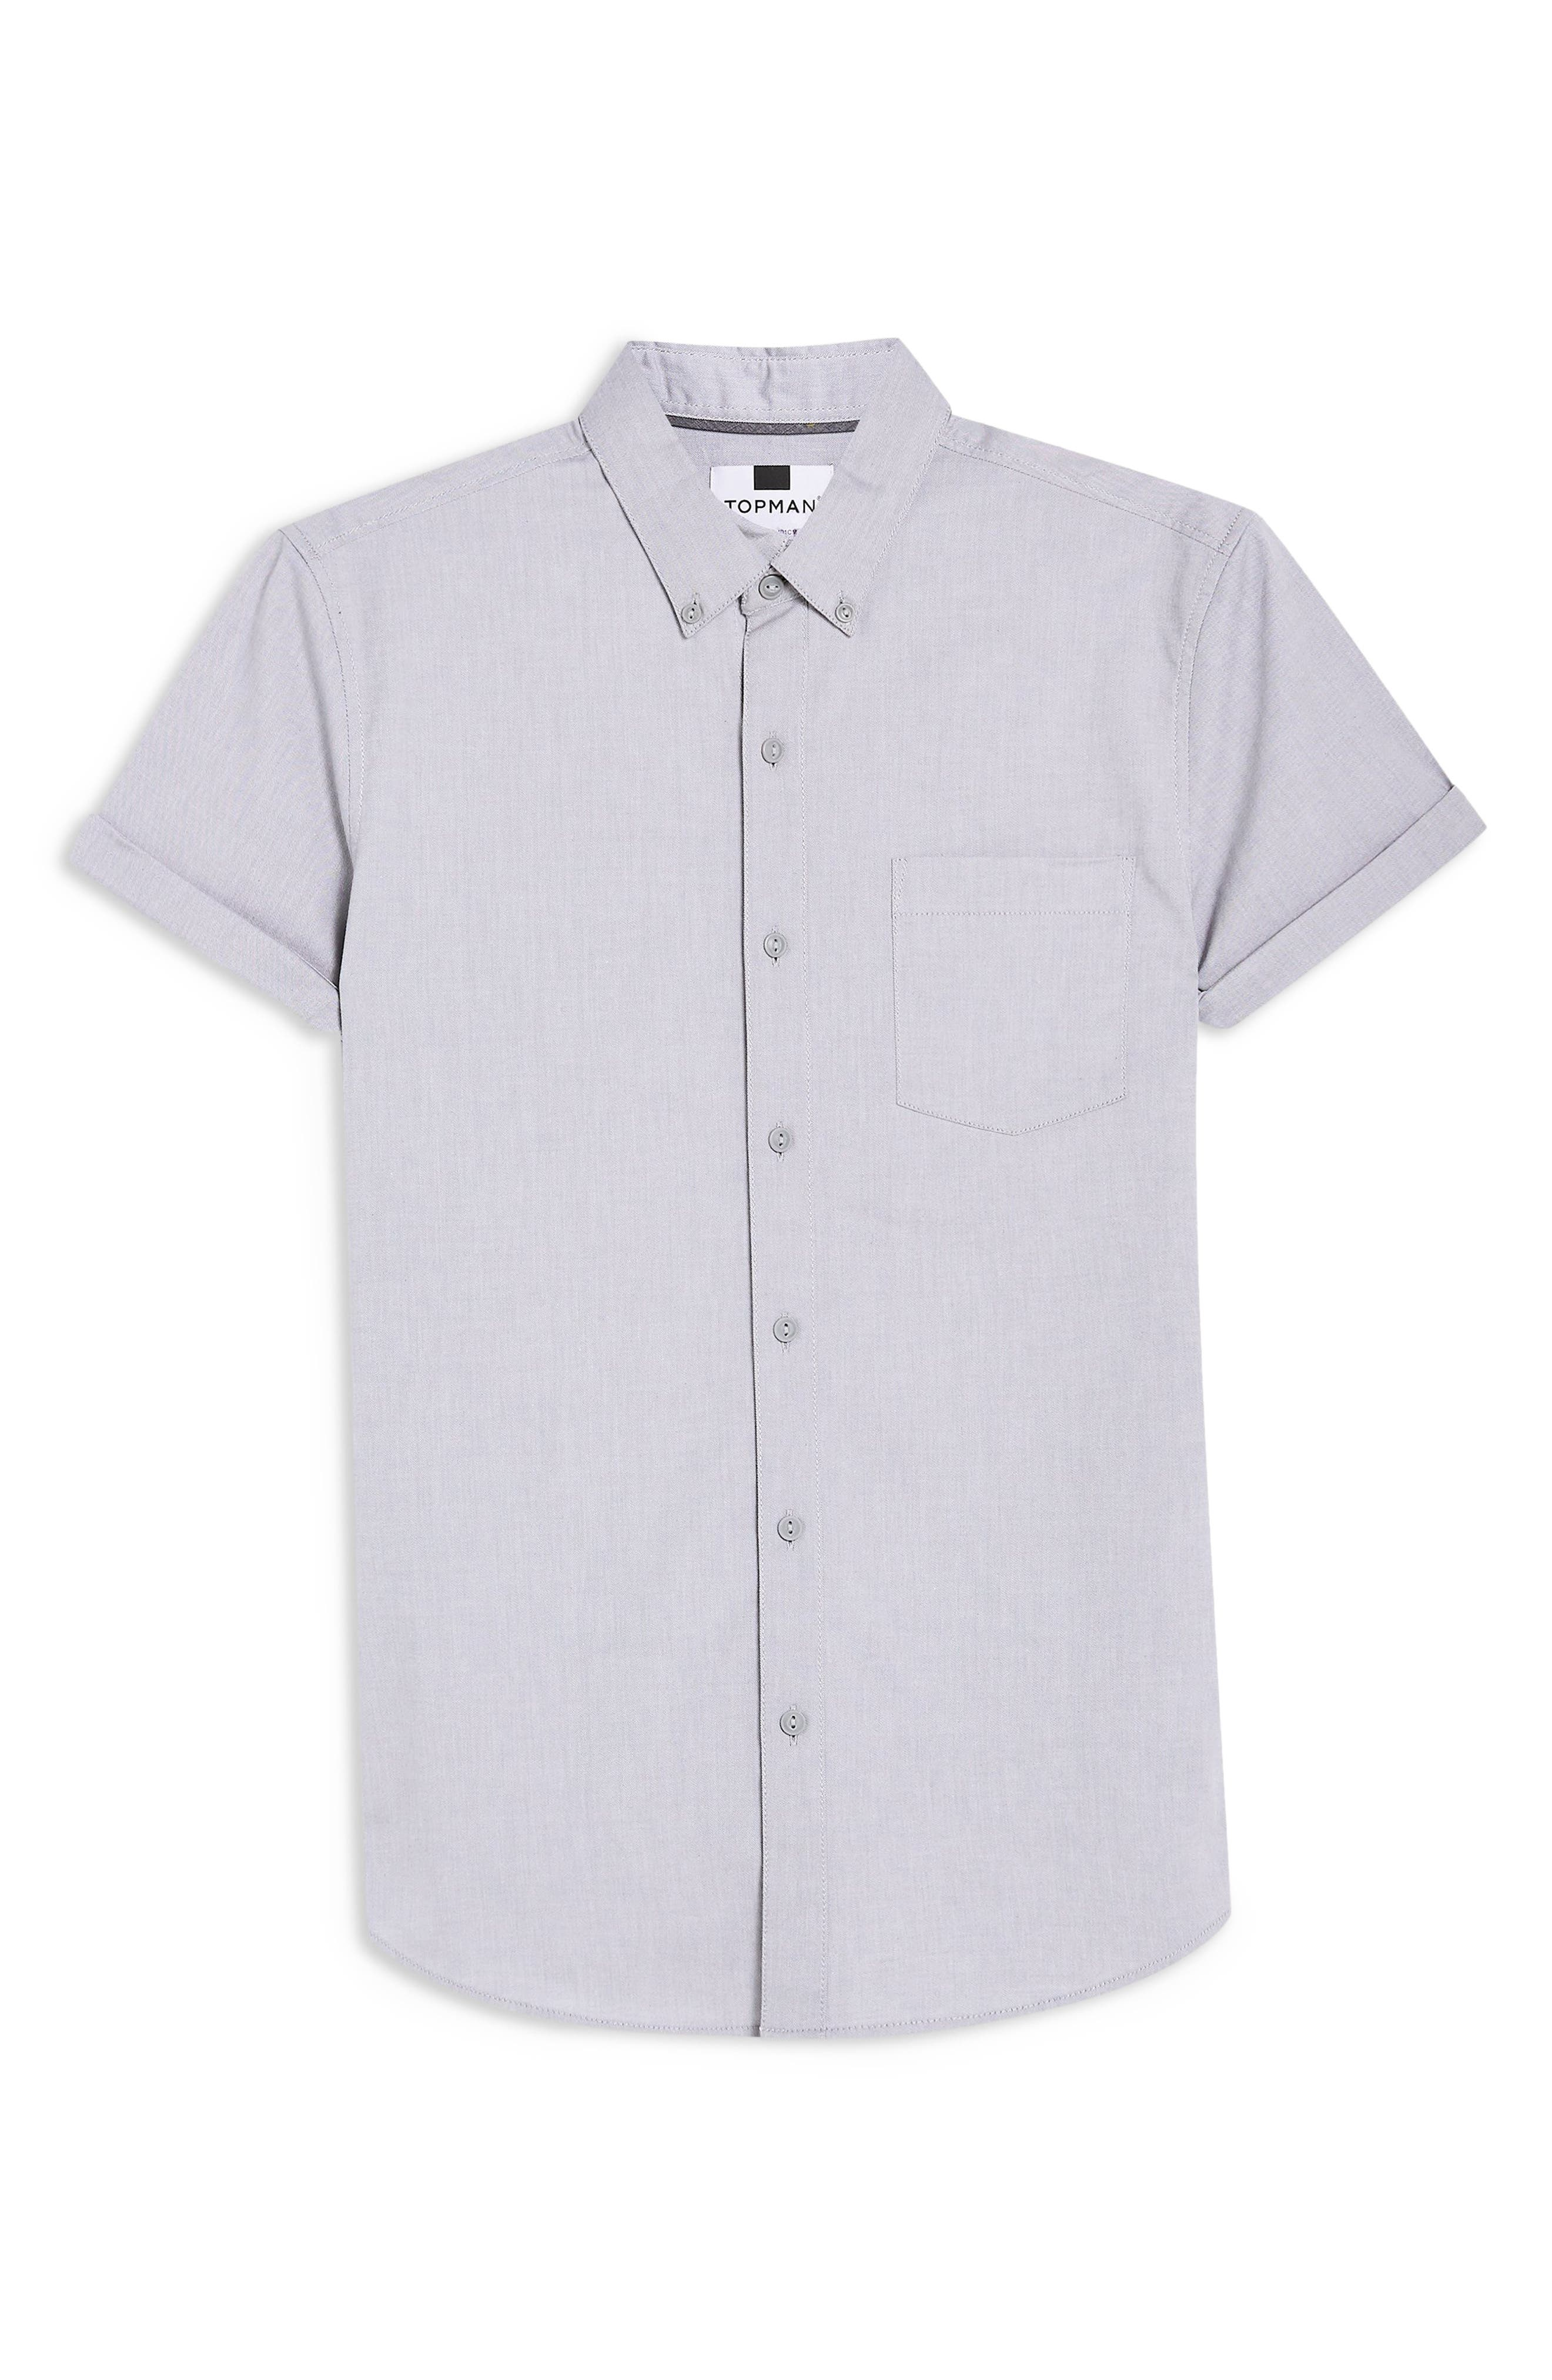 TOPMAN,                             Muscle Fit Oxford Shirt,                             Alternate thumbnail 4, color,                             GREY